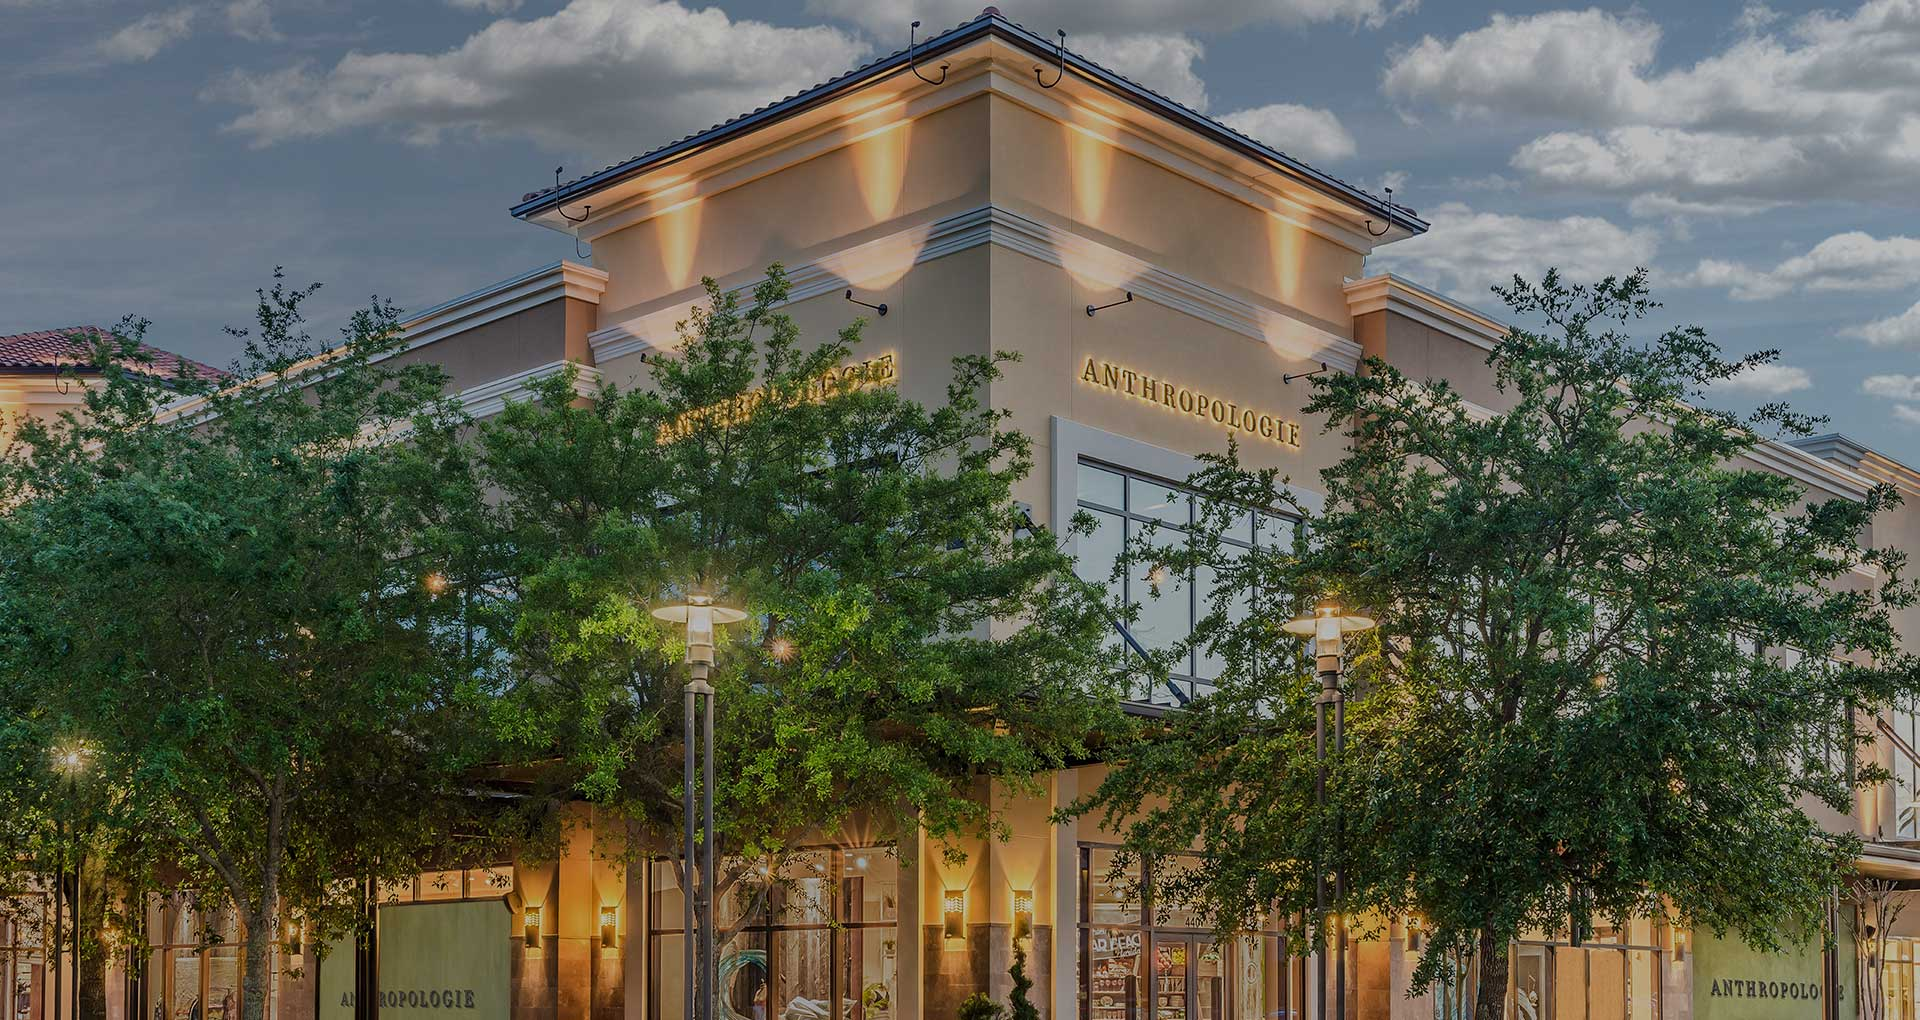 Anthropologie store exterior at Grand Boulevard